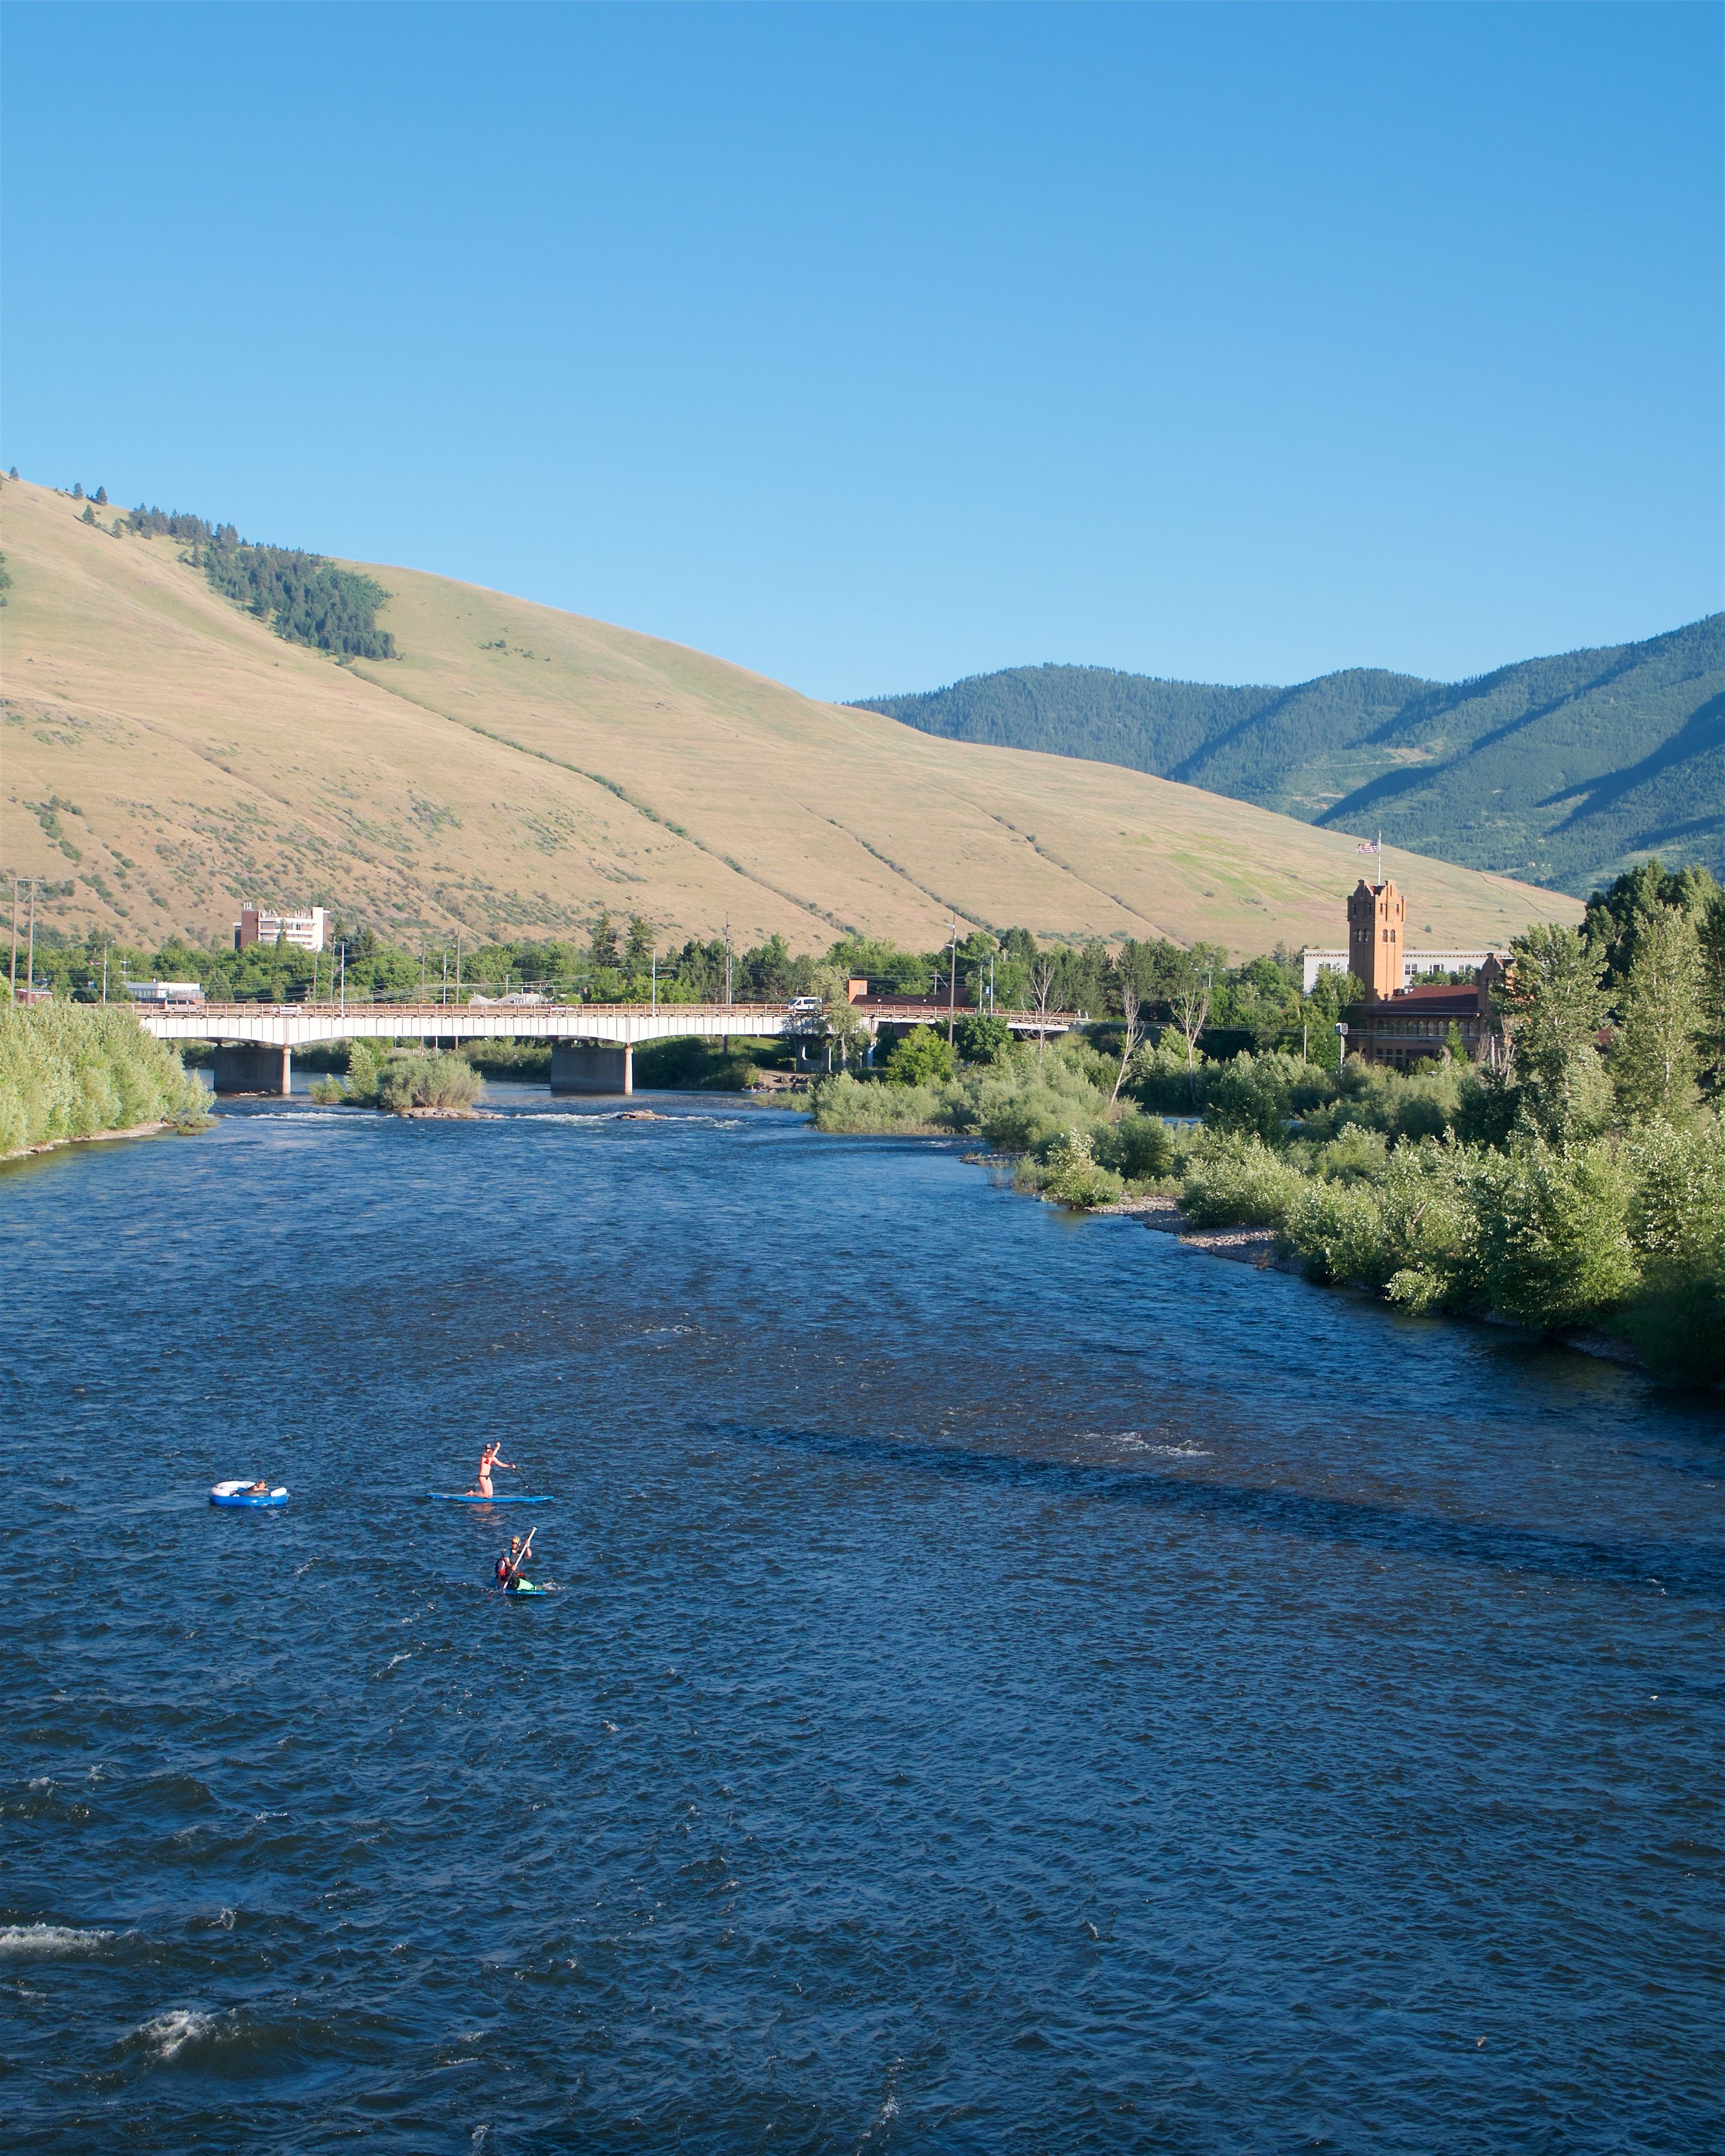 People enjoying the Clark Fork River